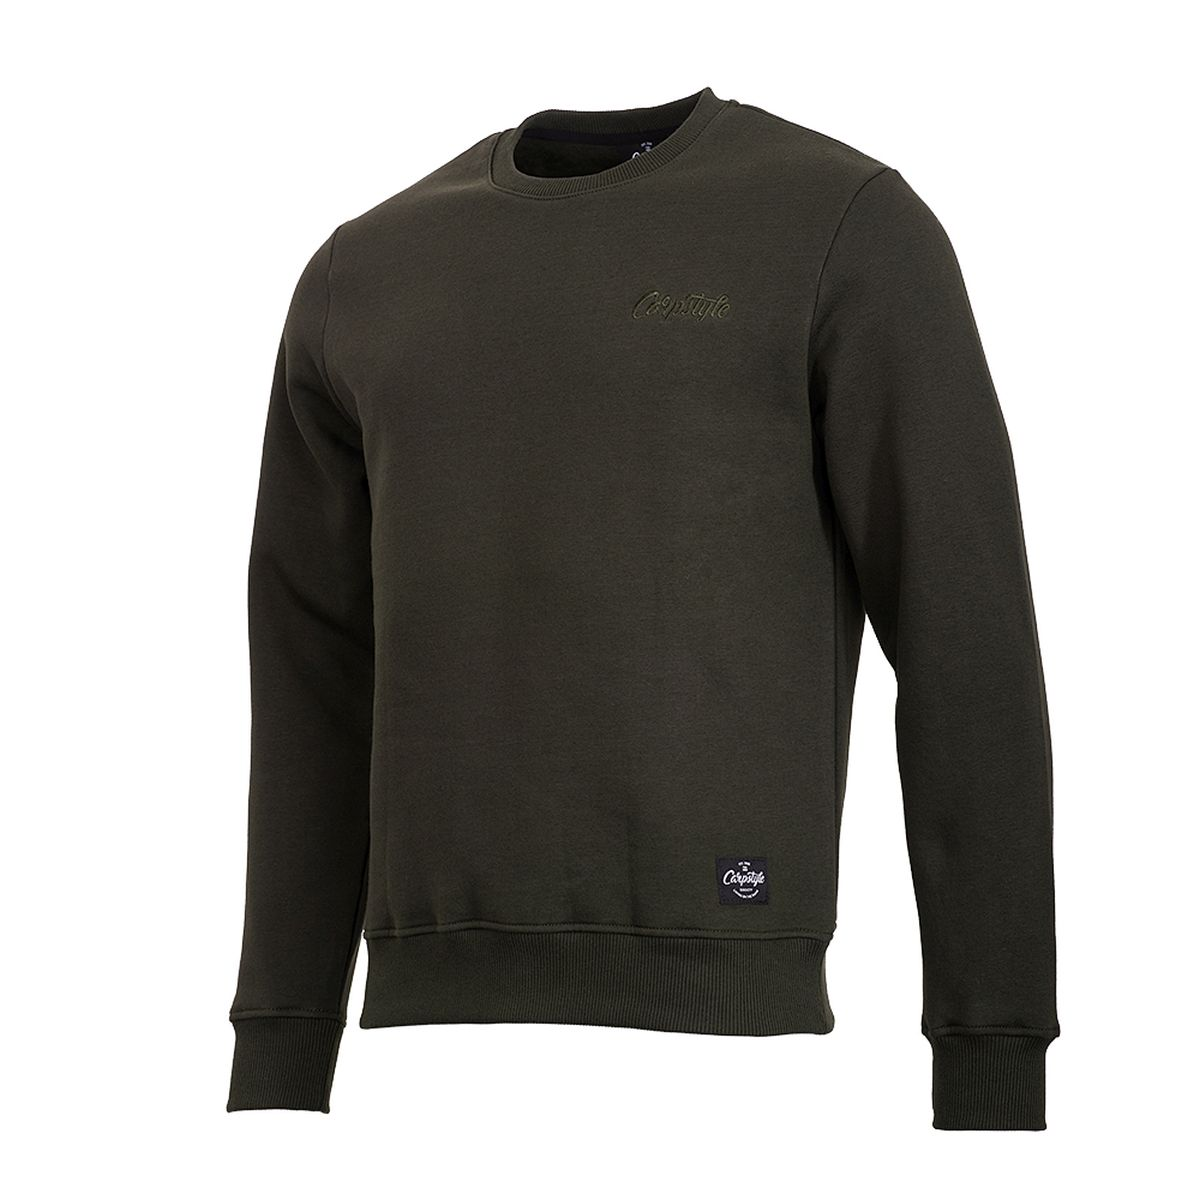 CARPSTYLE BANK SWEATSHIRT - 3XL